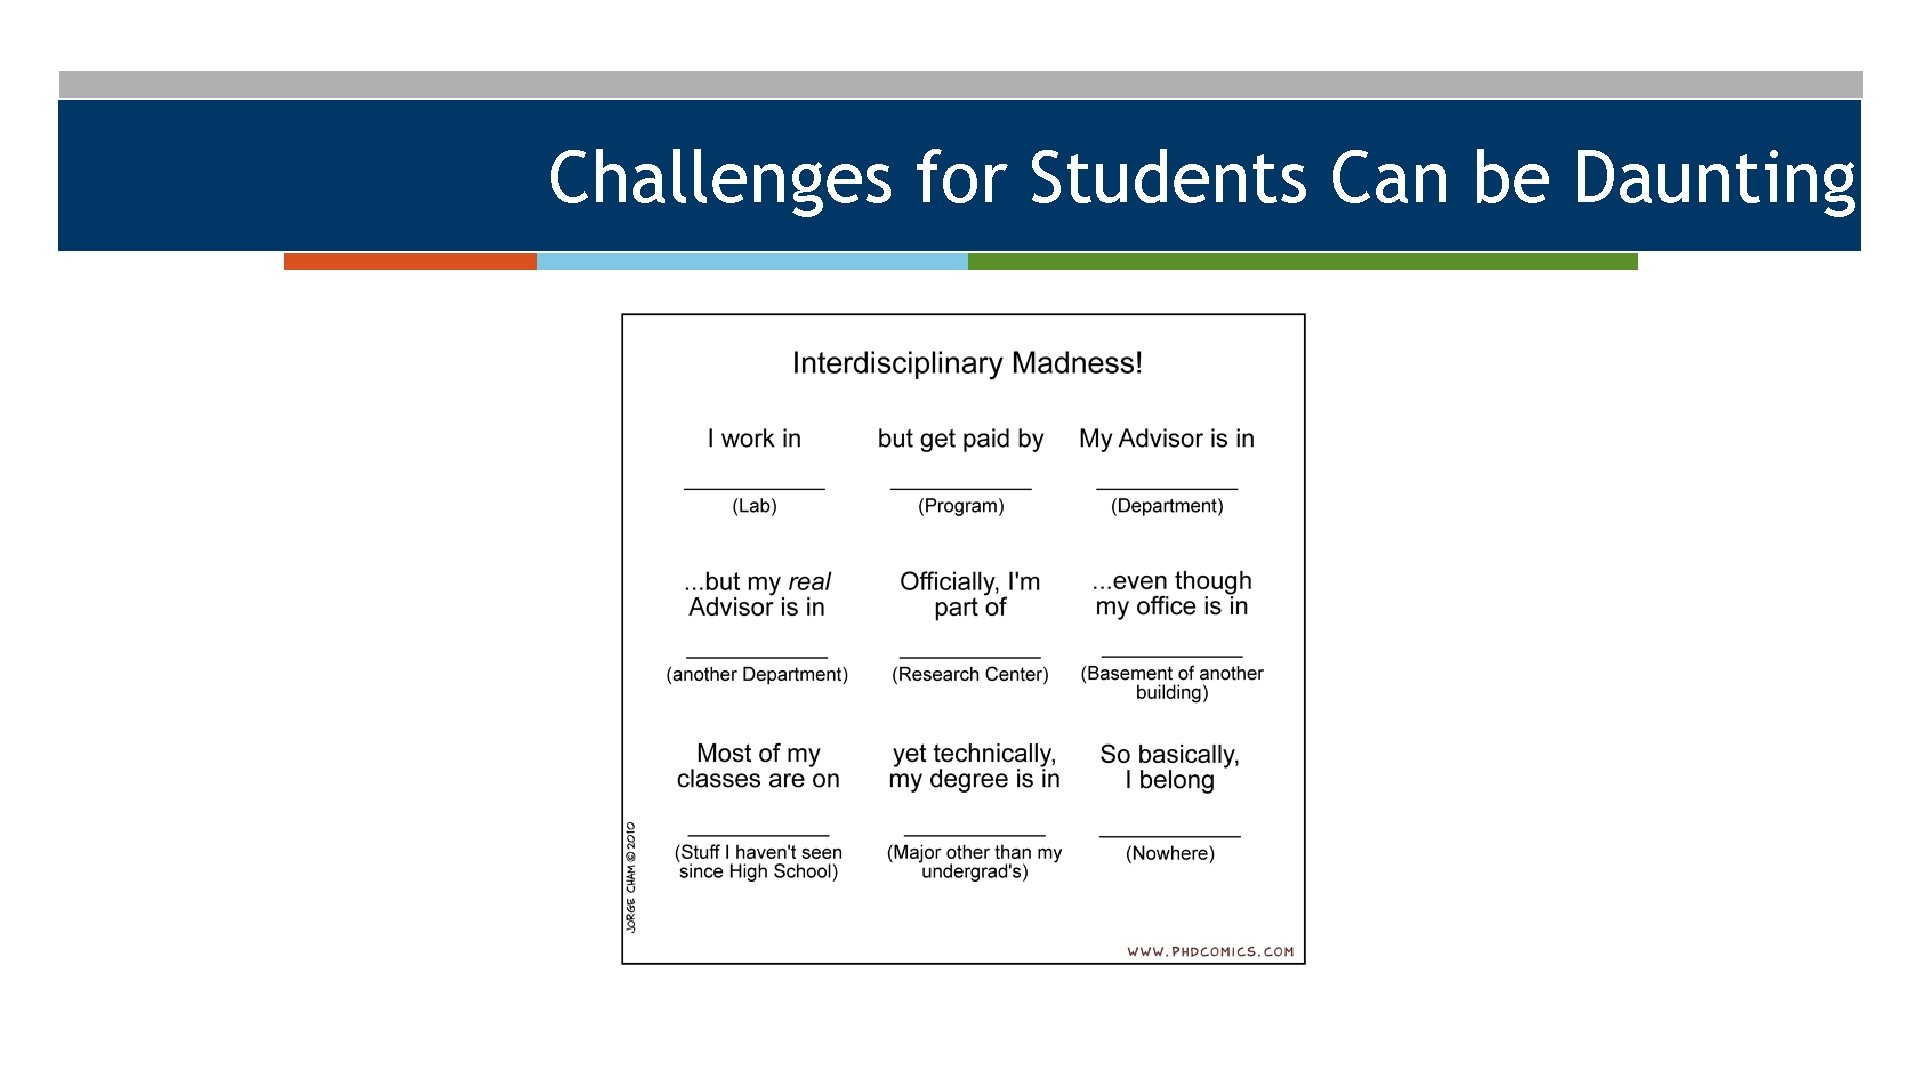 Challenges for Students Can be Daunting